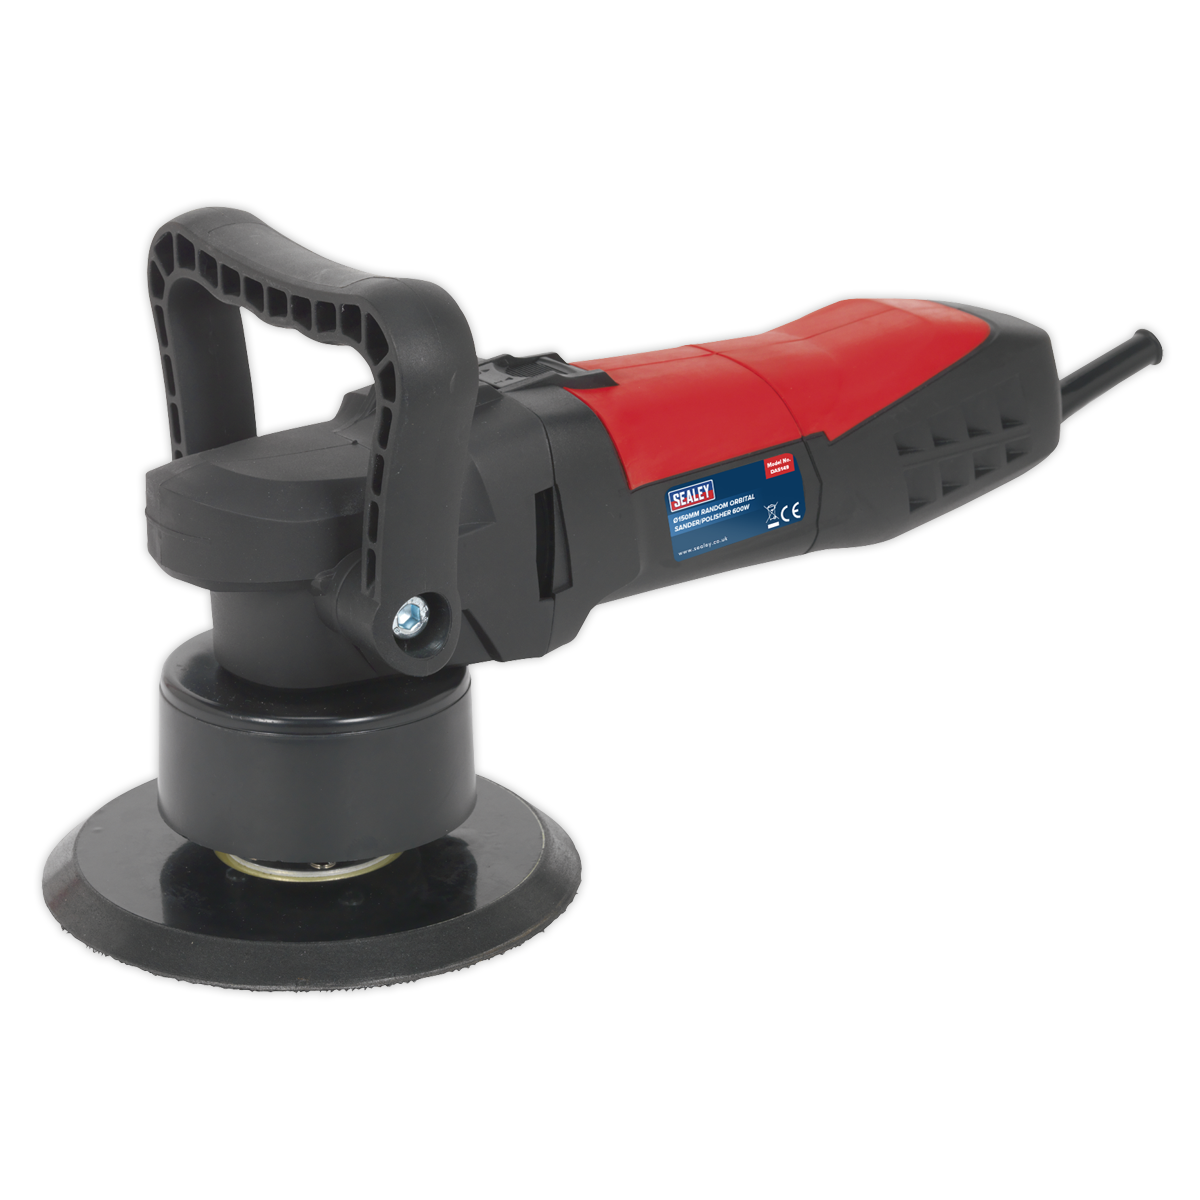 Sealey Random Orbital Dual Action Sander/Polisher | Dual action orbit of Ø8mm helps cover more surface during use. | toolforce.ie